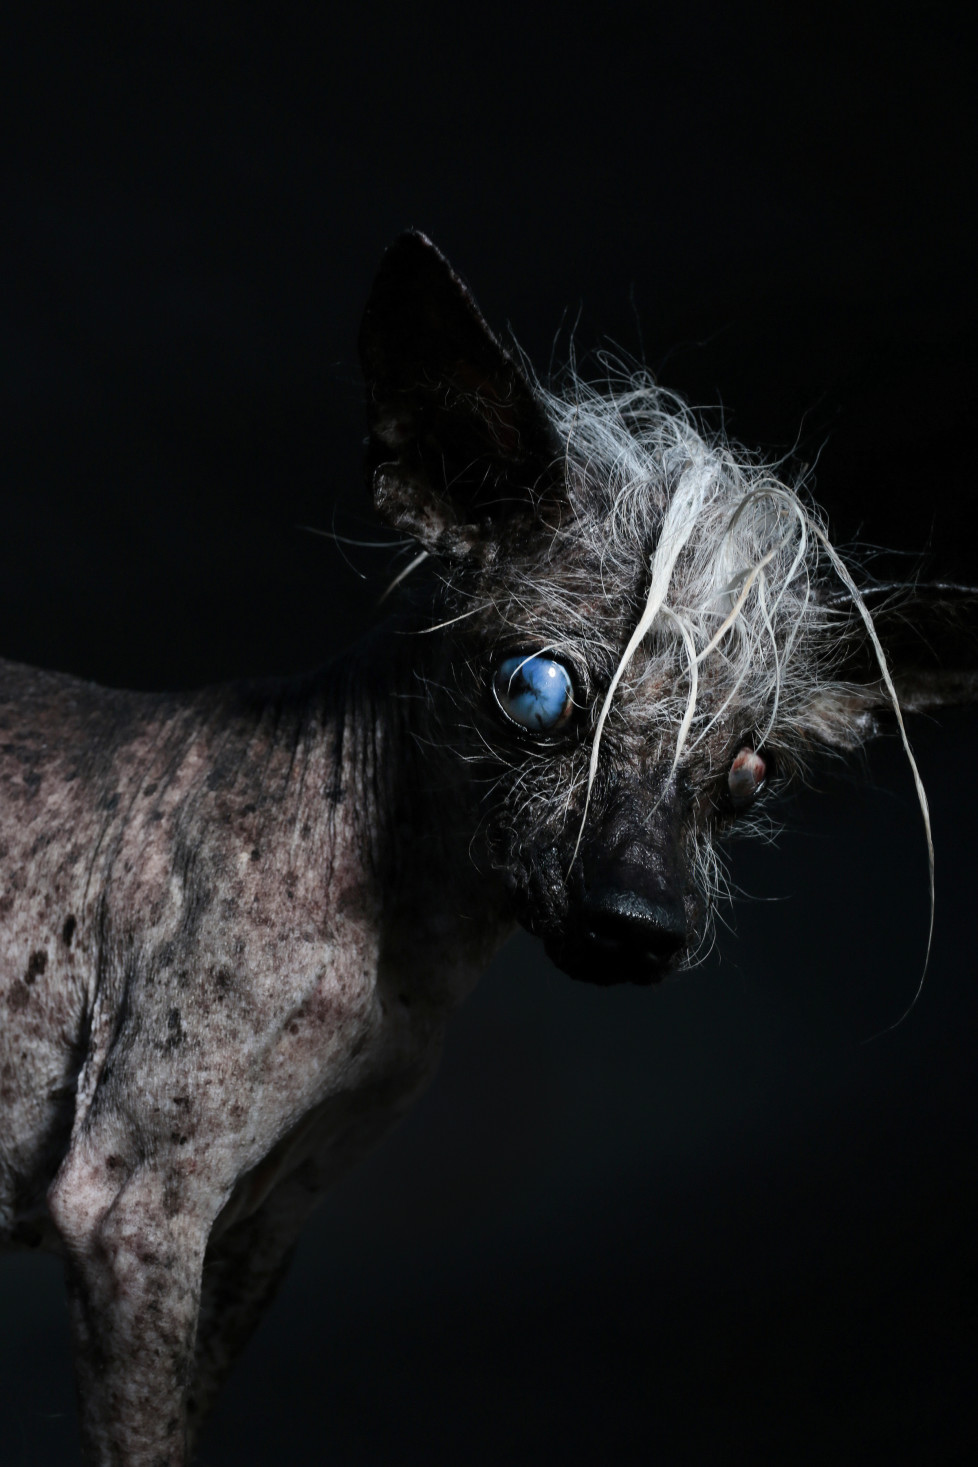 Sweepee RamboÕs biggest fan is her dad who is always telling people Sweepee is the prettiest little blue eyed Chinese Crested Chihuahua he has ever known. She drives to work everyday with her dad. At 15 years old, Sweepee Rambo is blind in both eyes and wears doggie diapers.